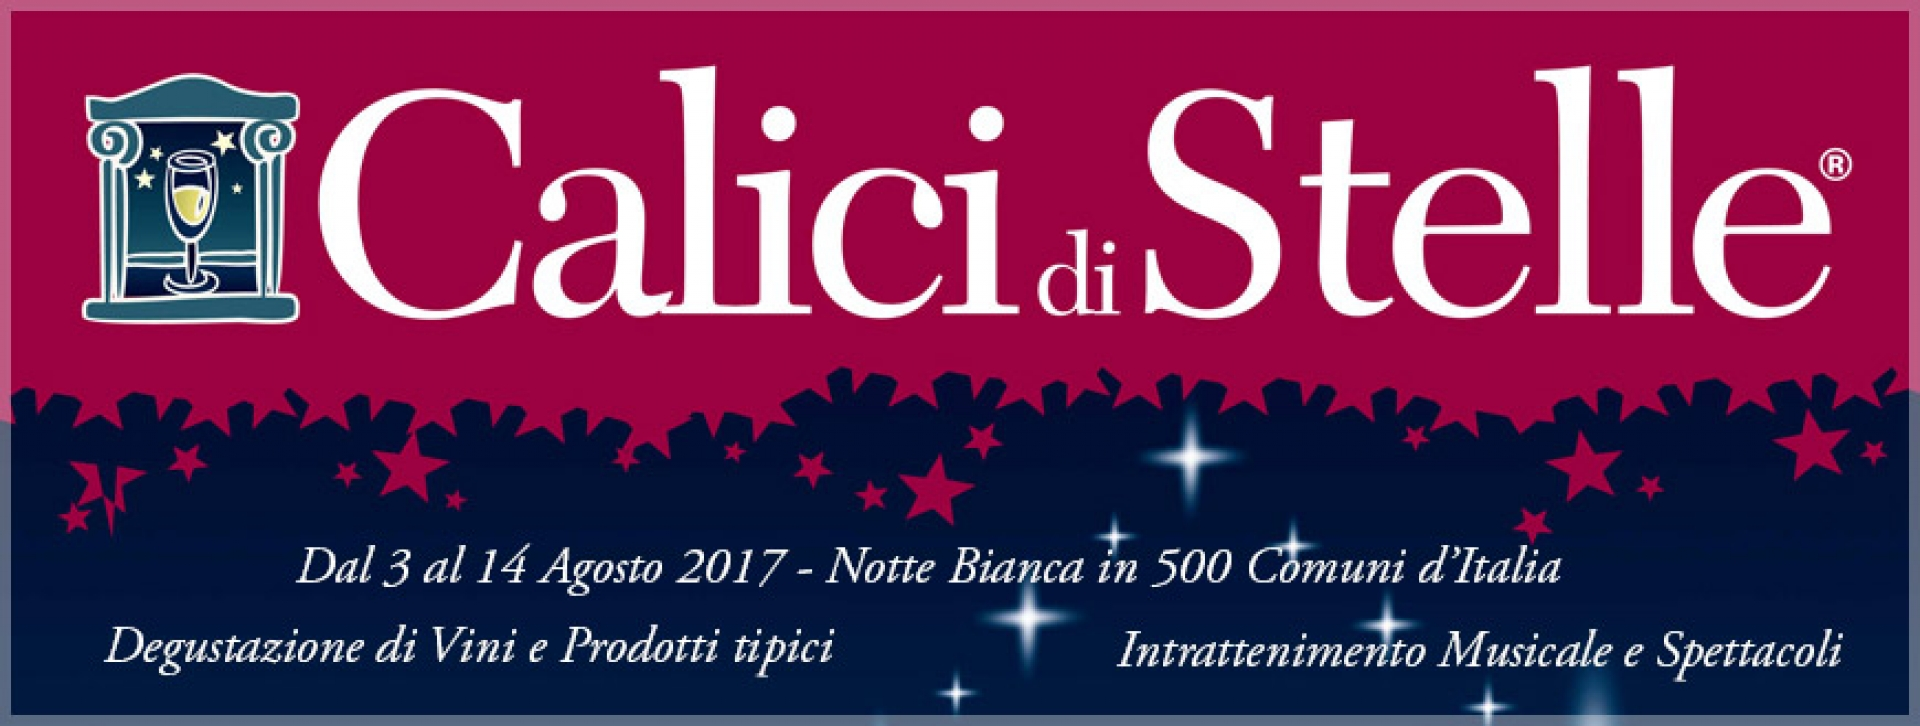 CALICI DI STELLE PER 1.000.000 DI WINE LOVERS